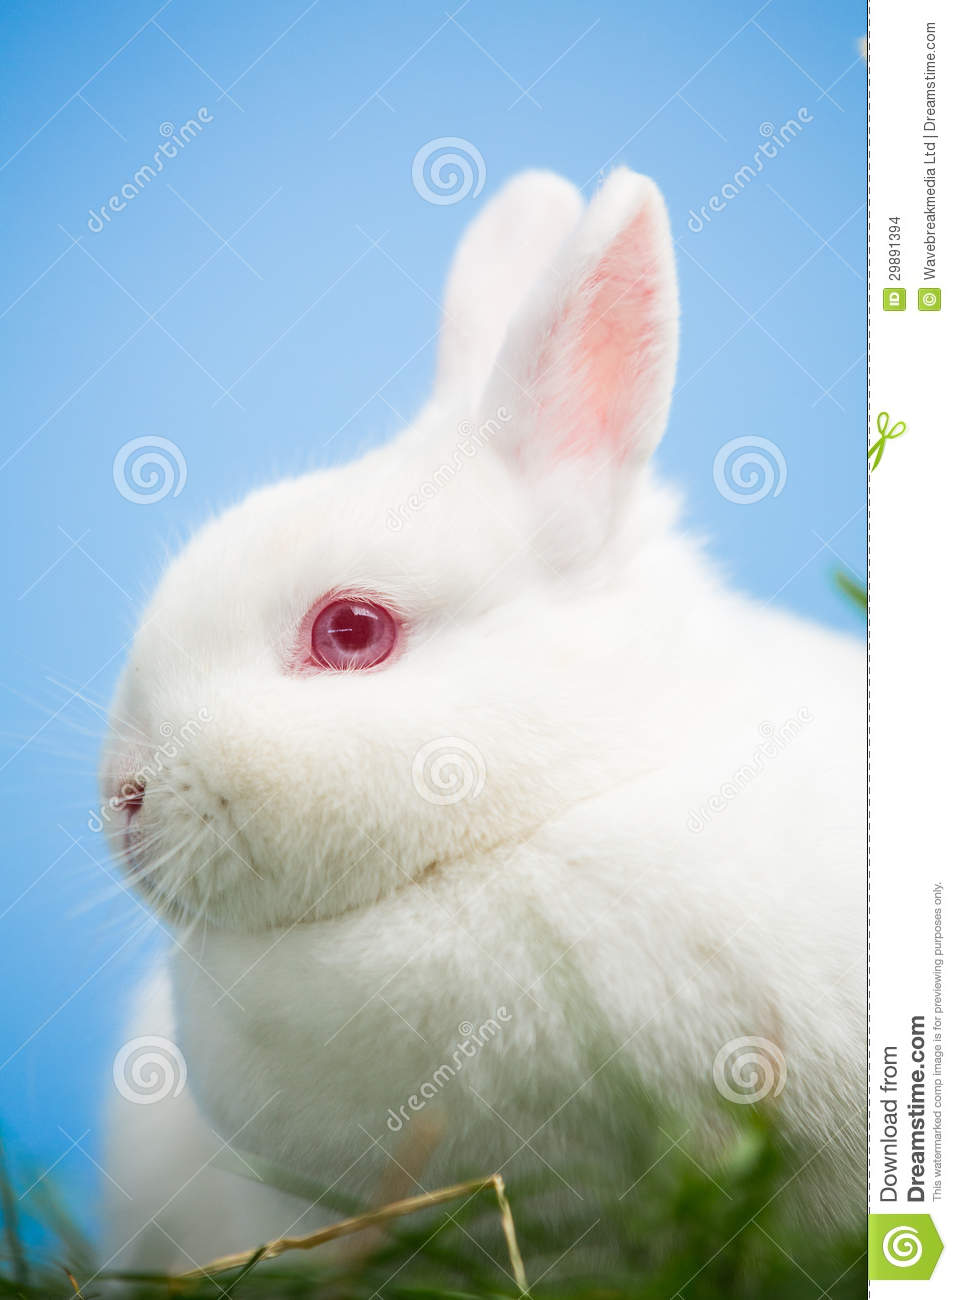 White Bunny With Pink Eyes And Ears Stock Photo - Image ...